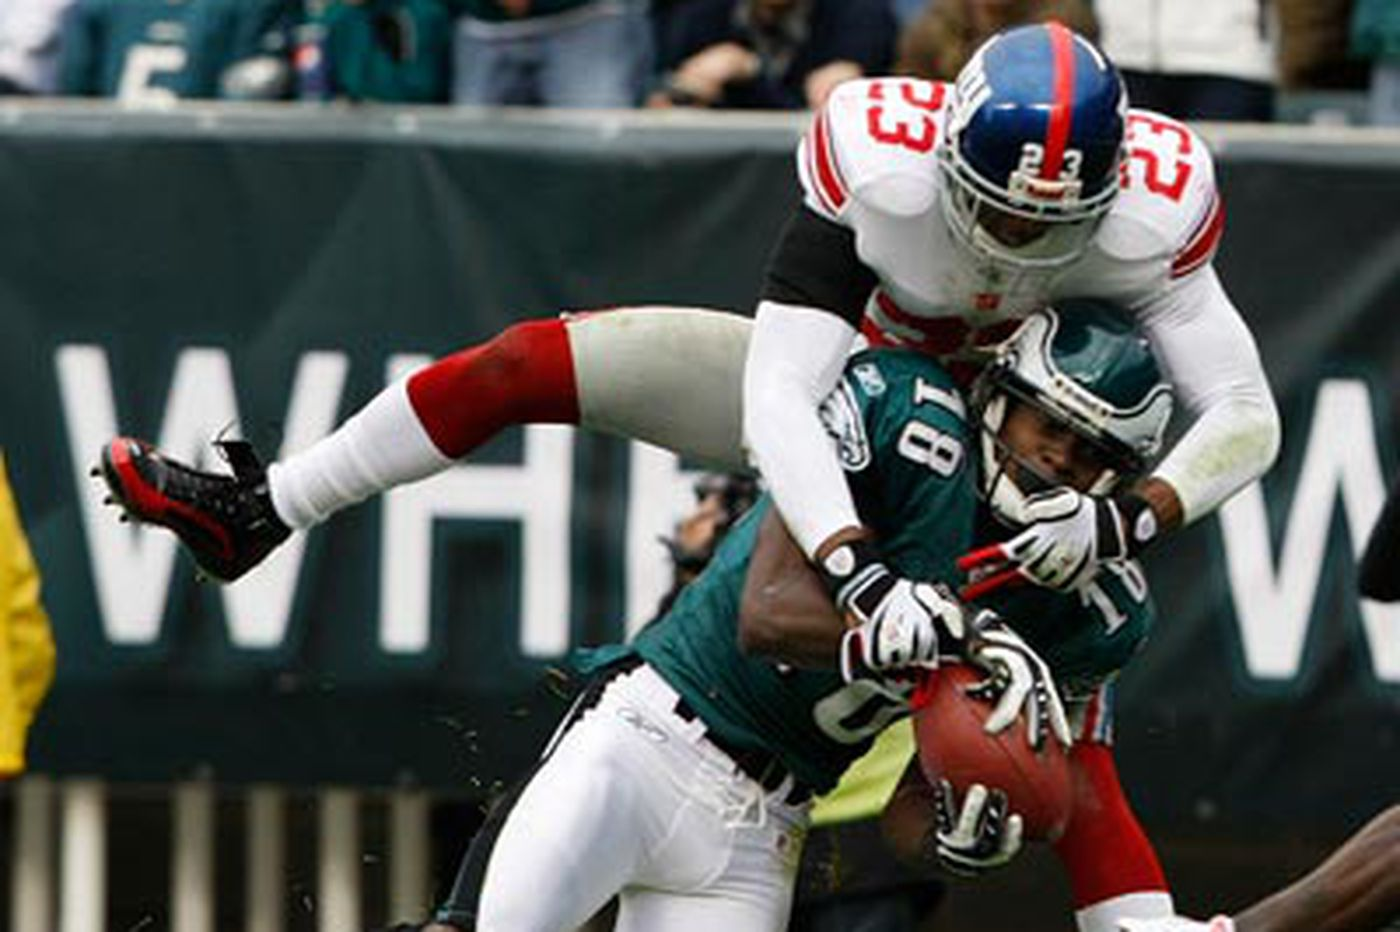 Les Bowen: Eagles have to forget about their last meeting with Giants